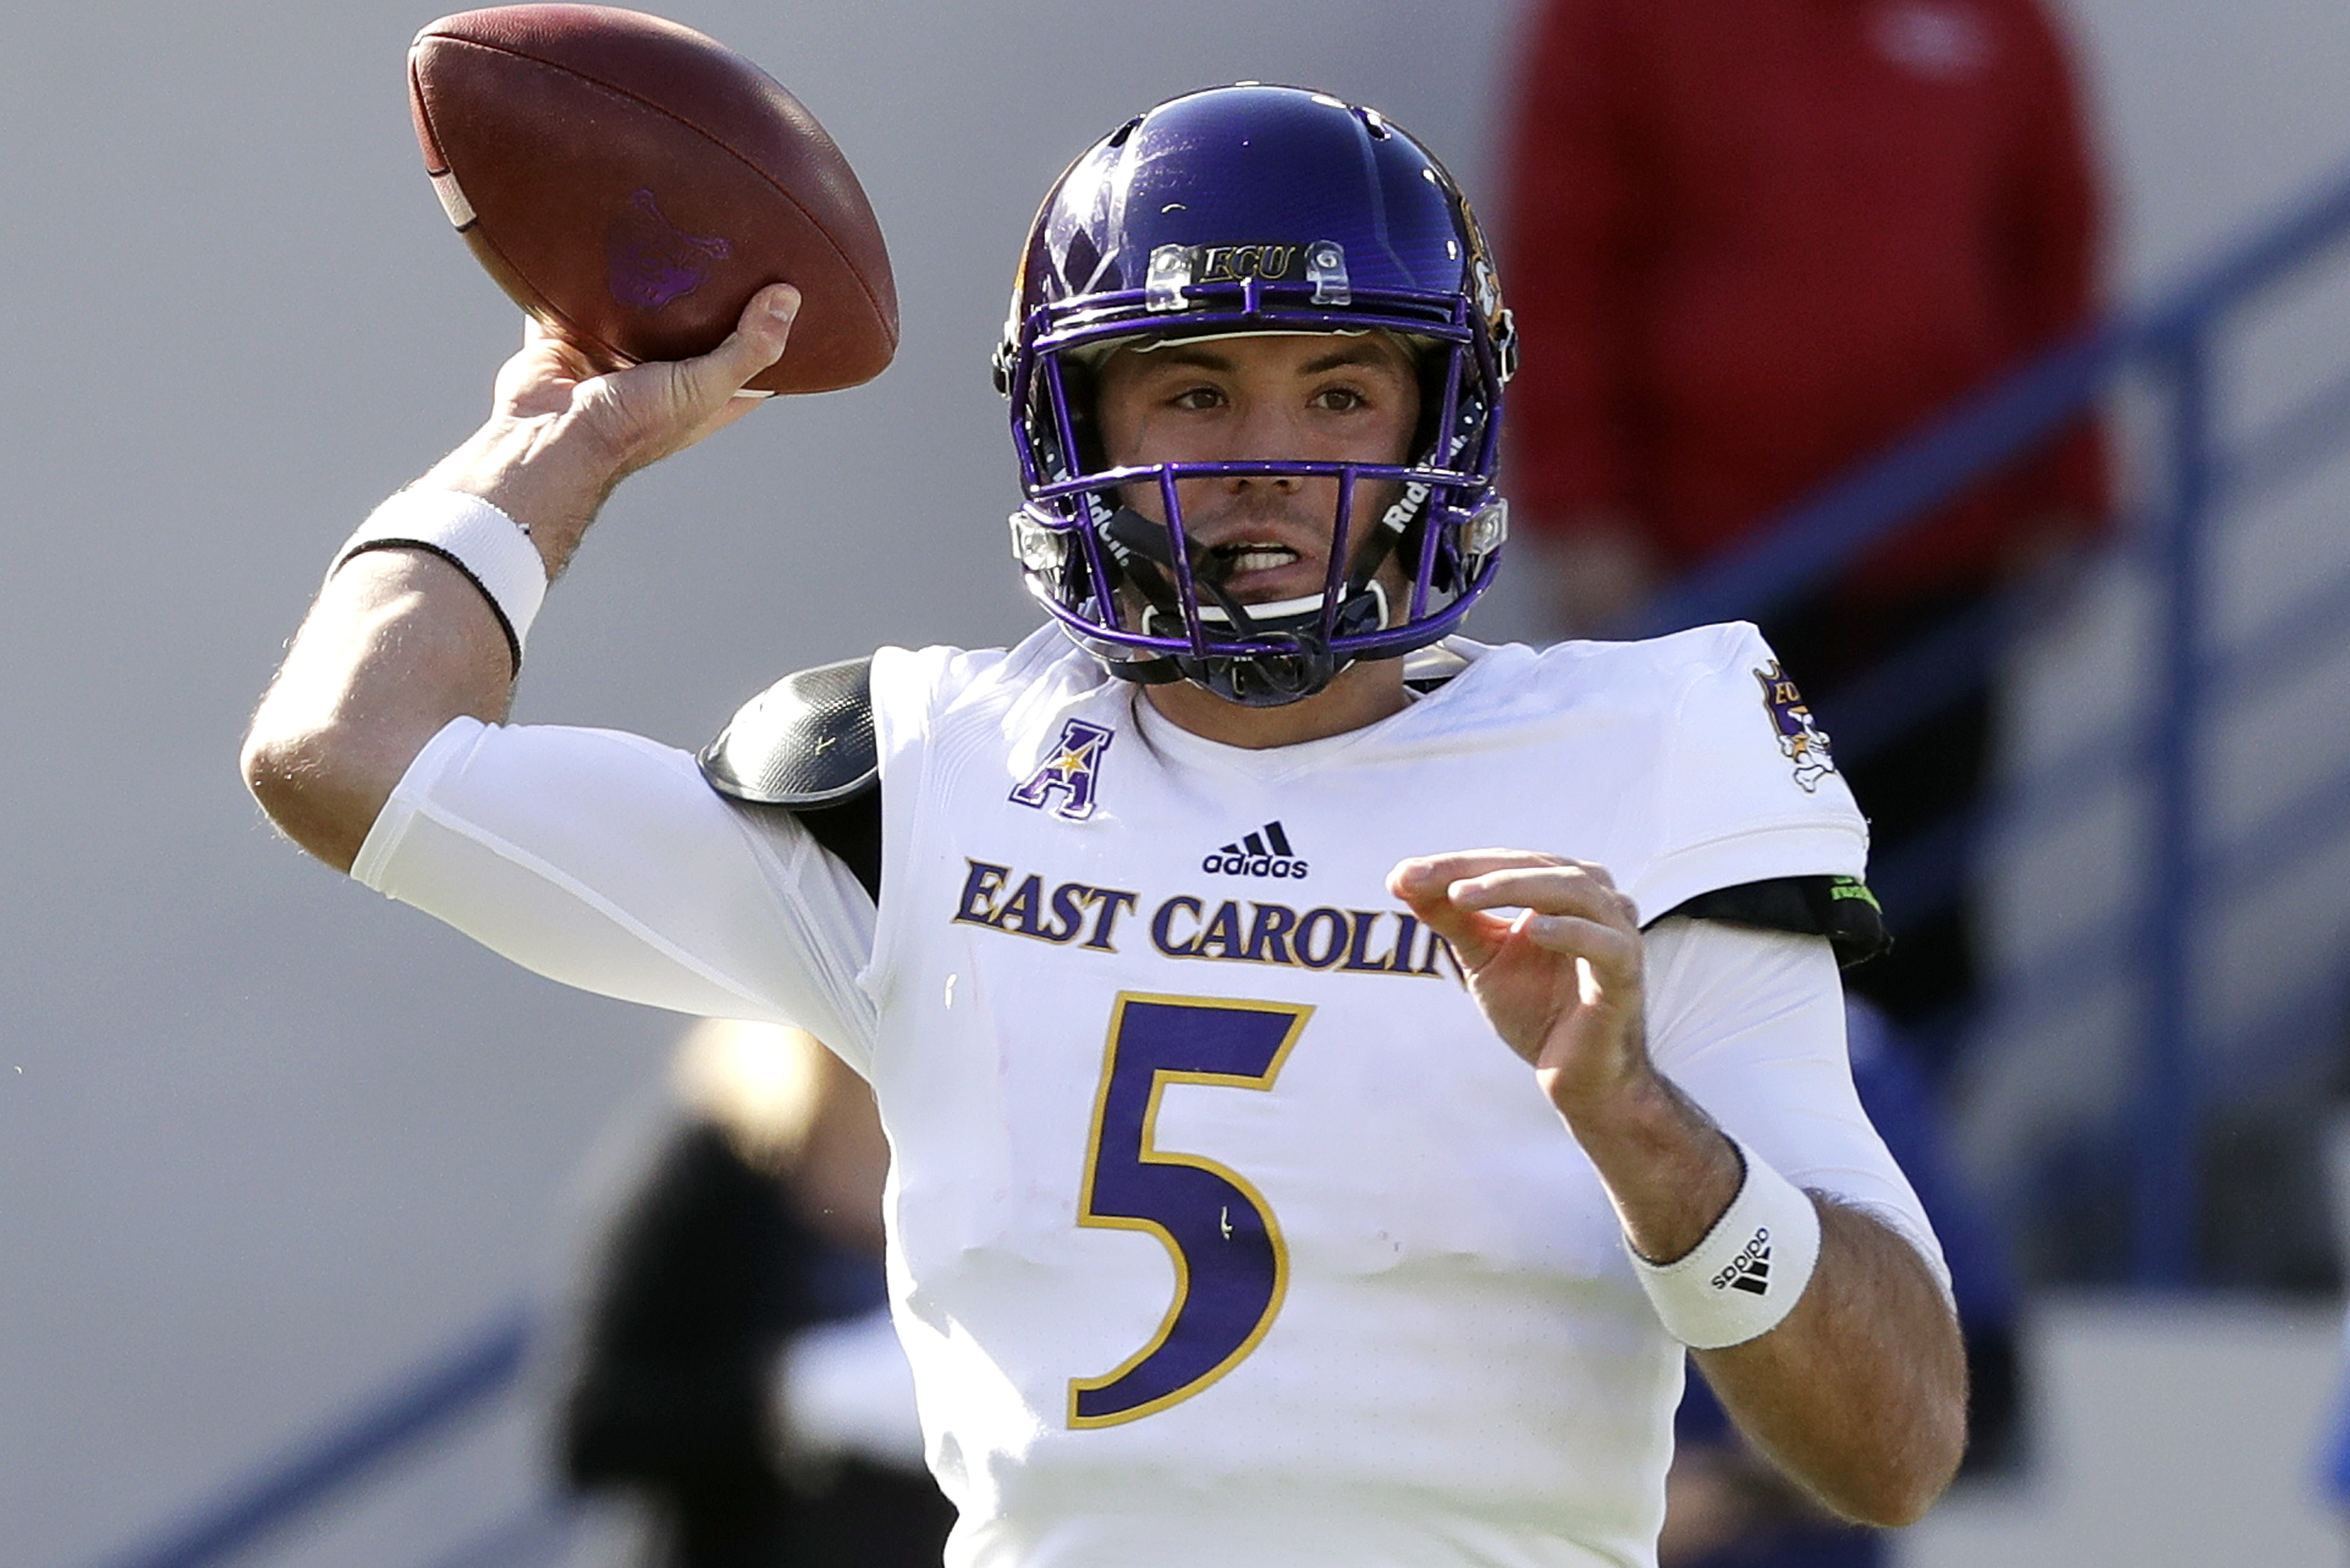 hot sale online 7e2e5 2e220 ECU Graduate Transfer QB Gardner Minshew Reportedly Commits ...